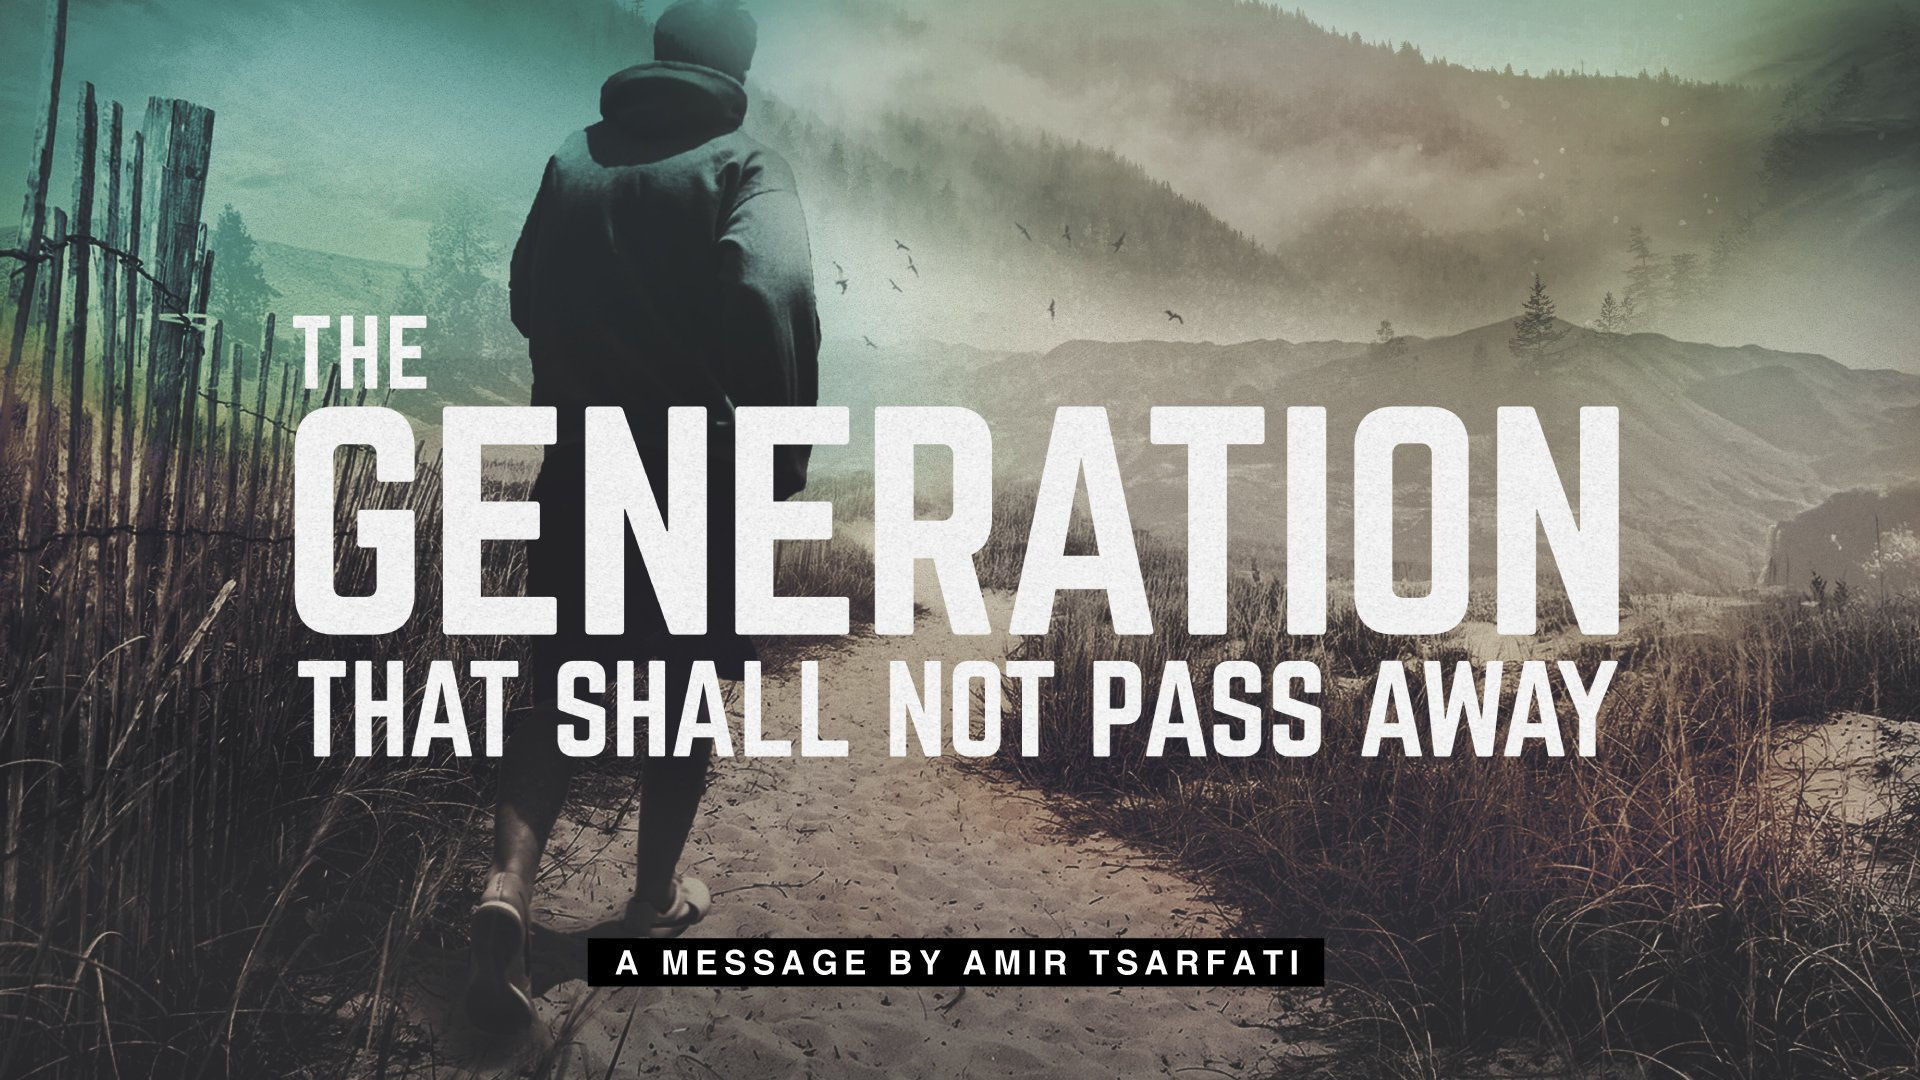 The Generation That Shall Not Pass Away 1920x1080.jpg